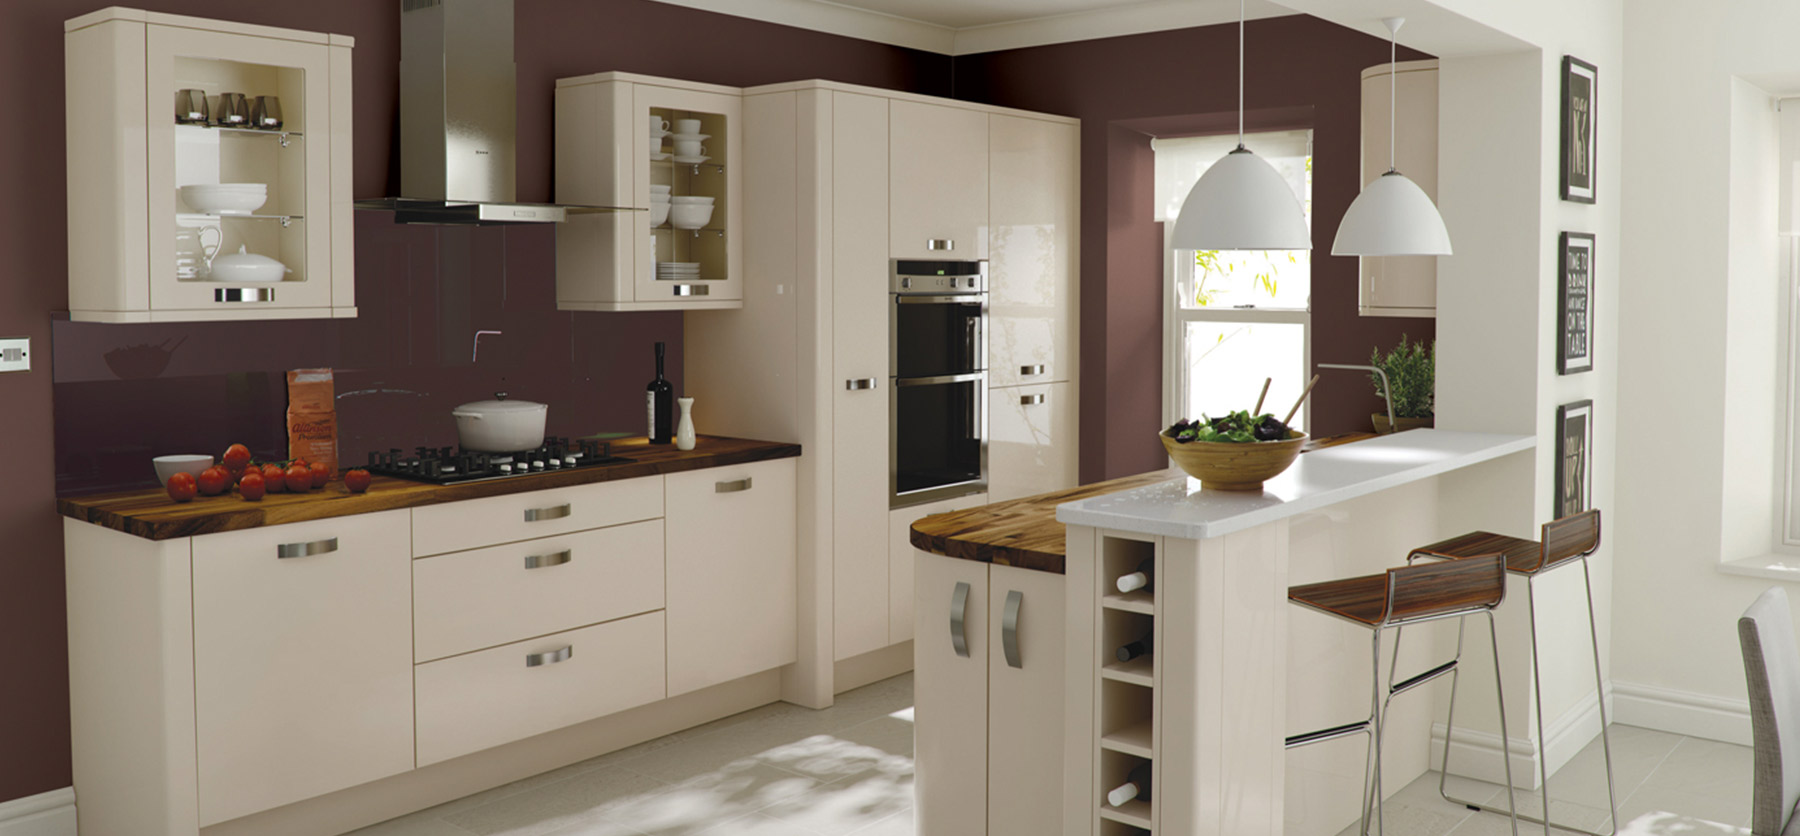 Premier kitchen & bathrooms